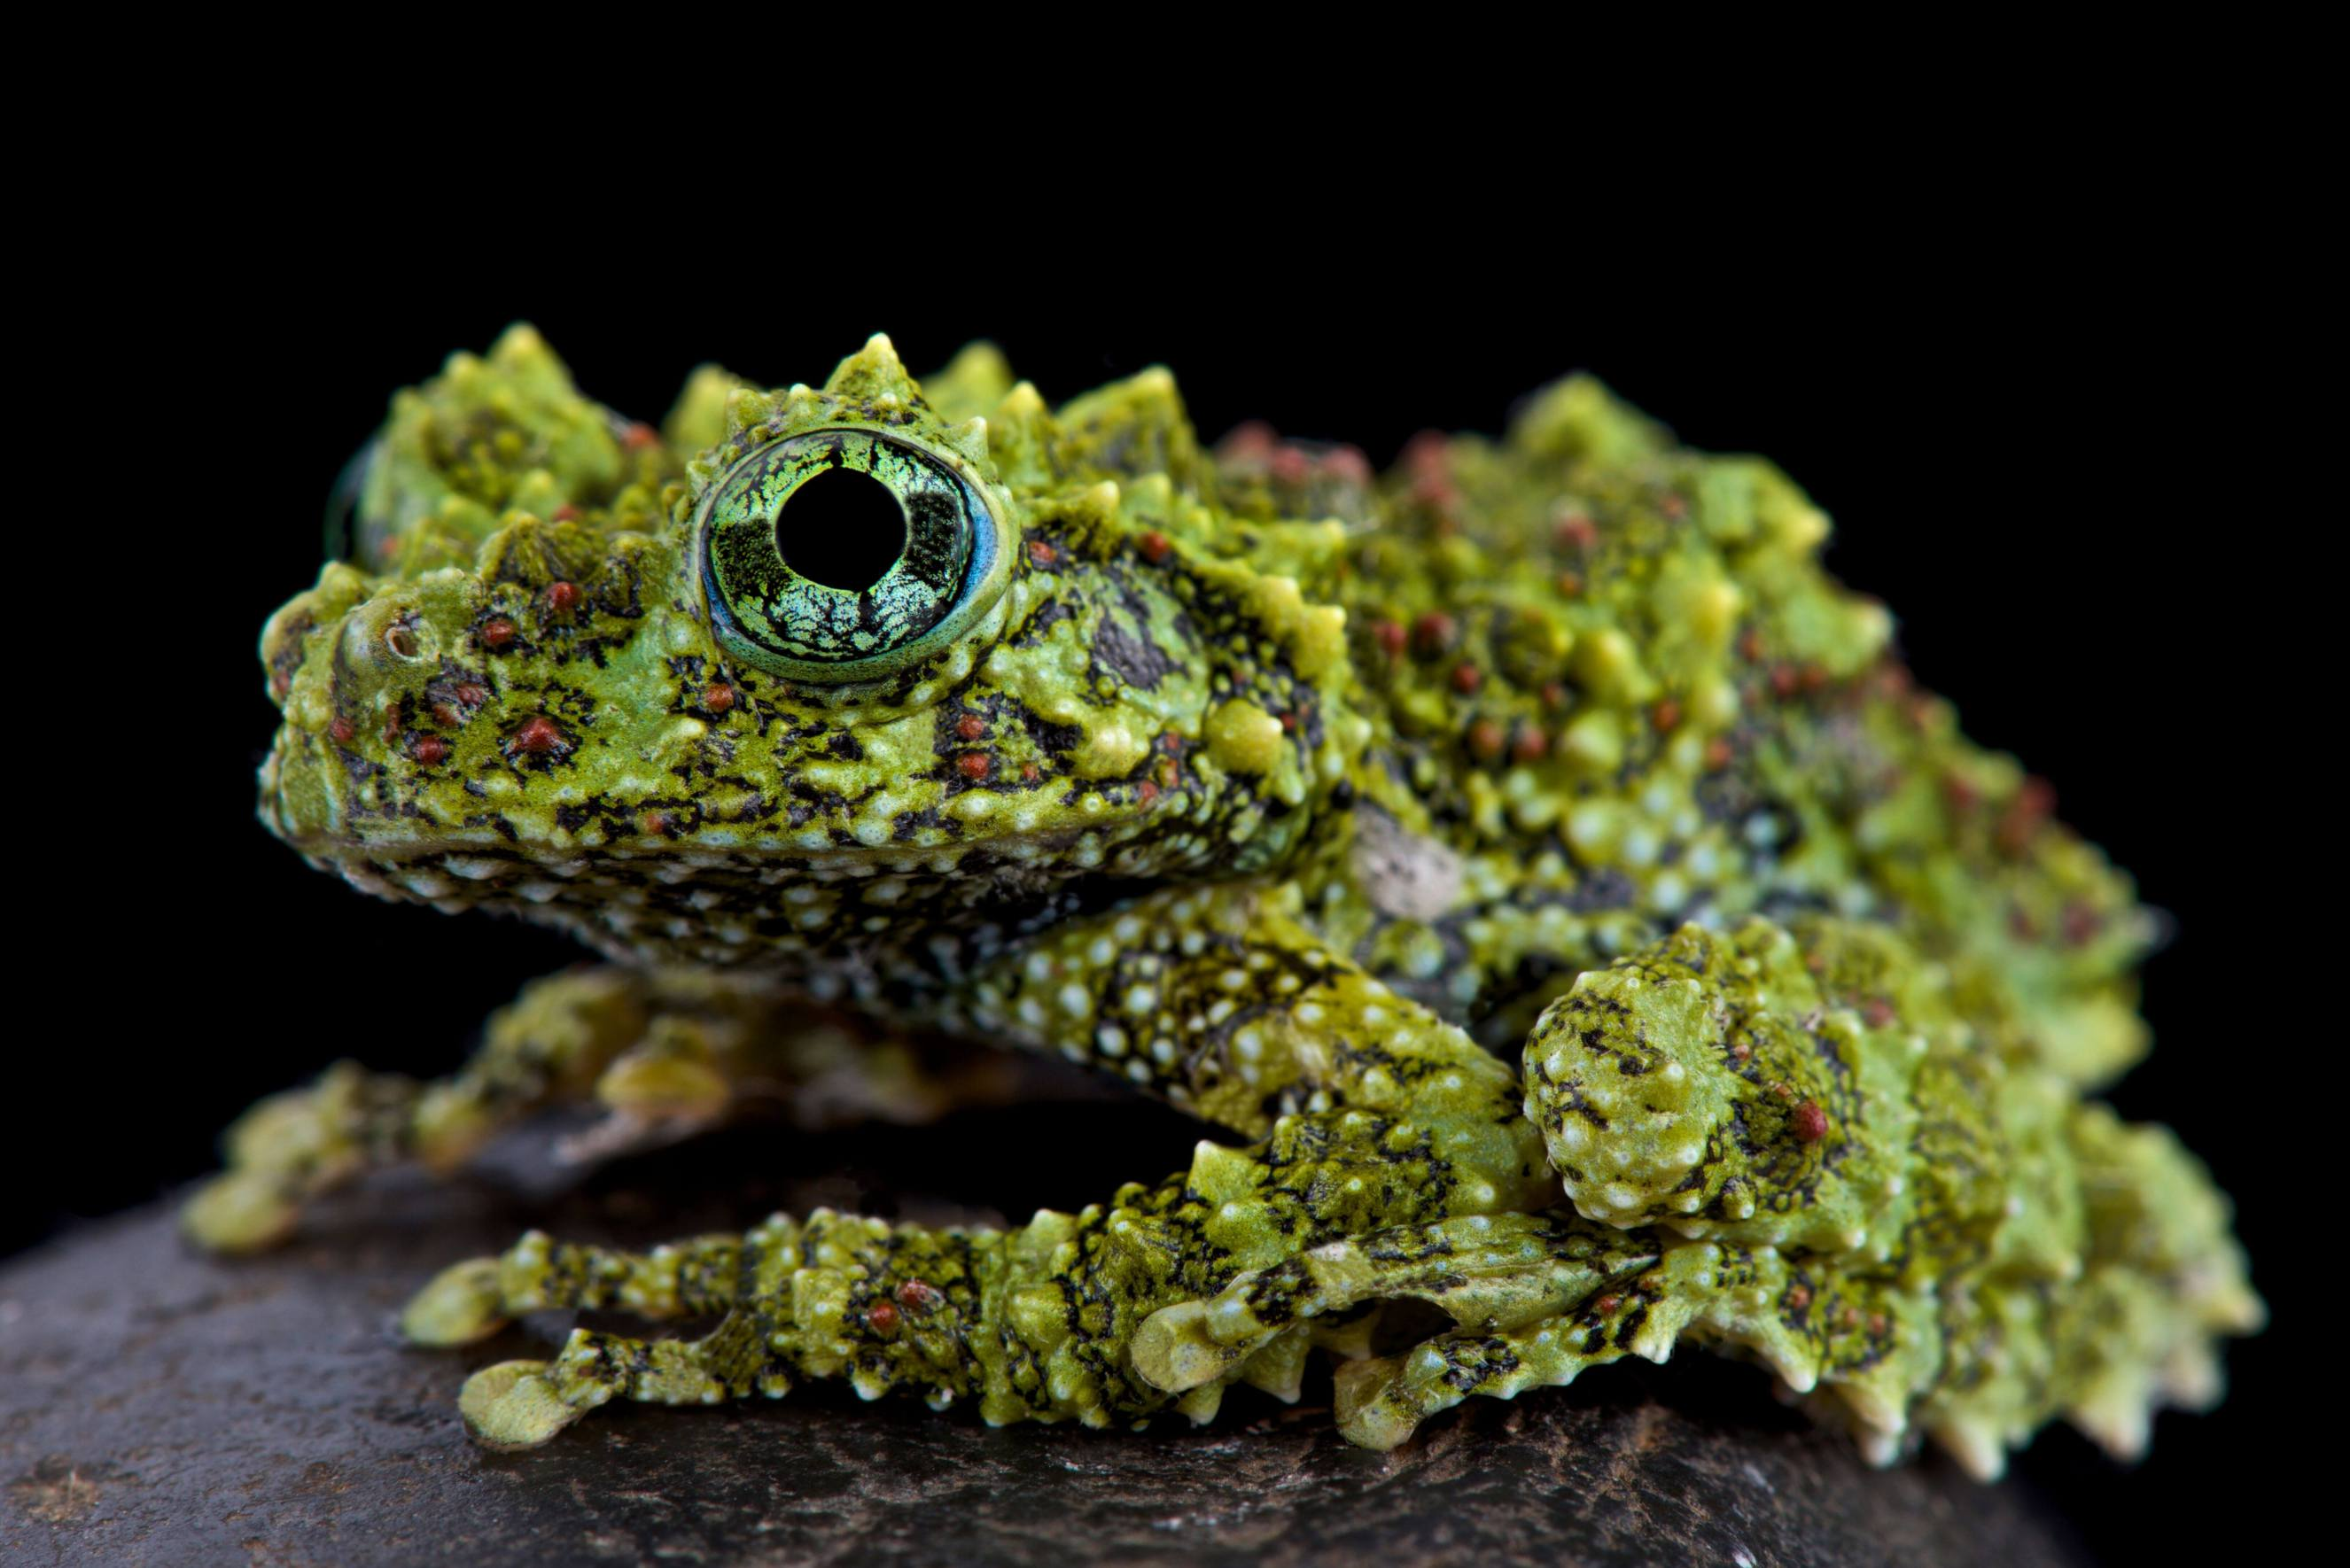 Mossy Frog, Theloderma corticale, Matthijs Kuijpers, cold instinct, mimetic frog, lichen frog, frog from asia